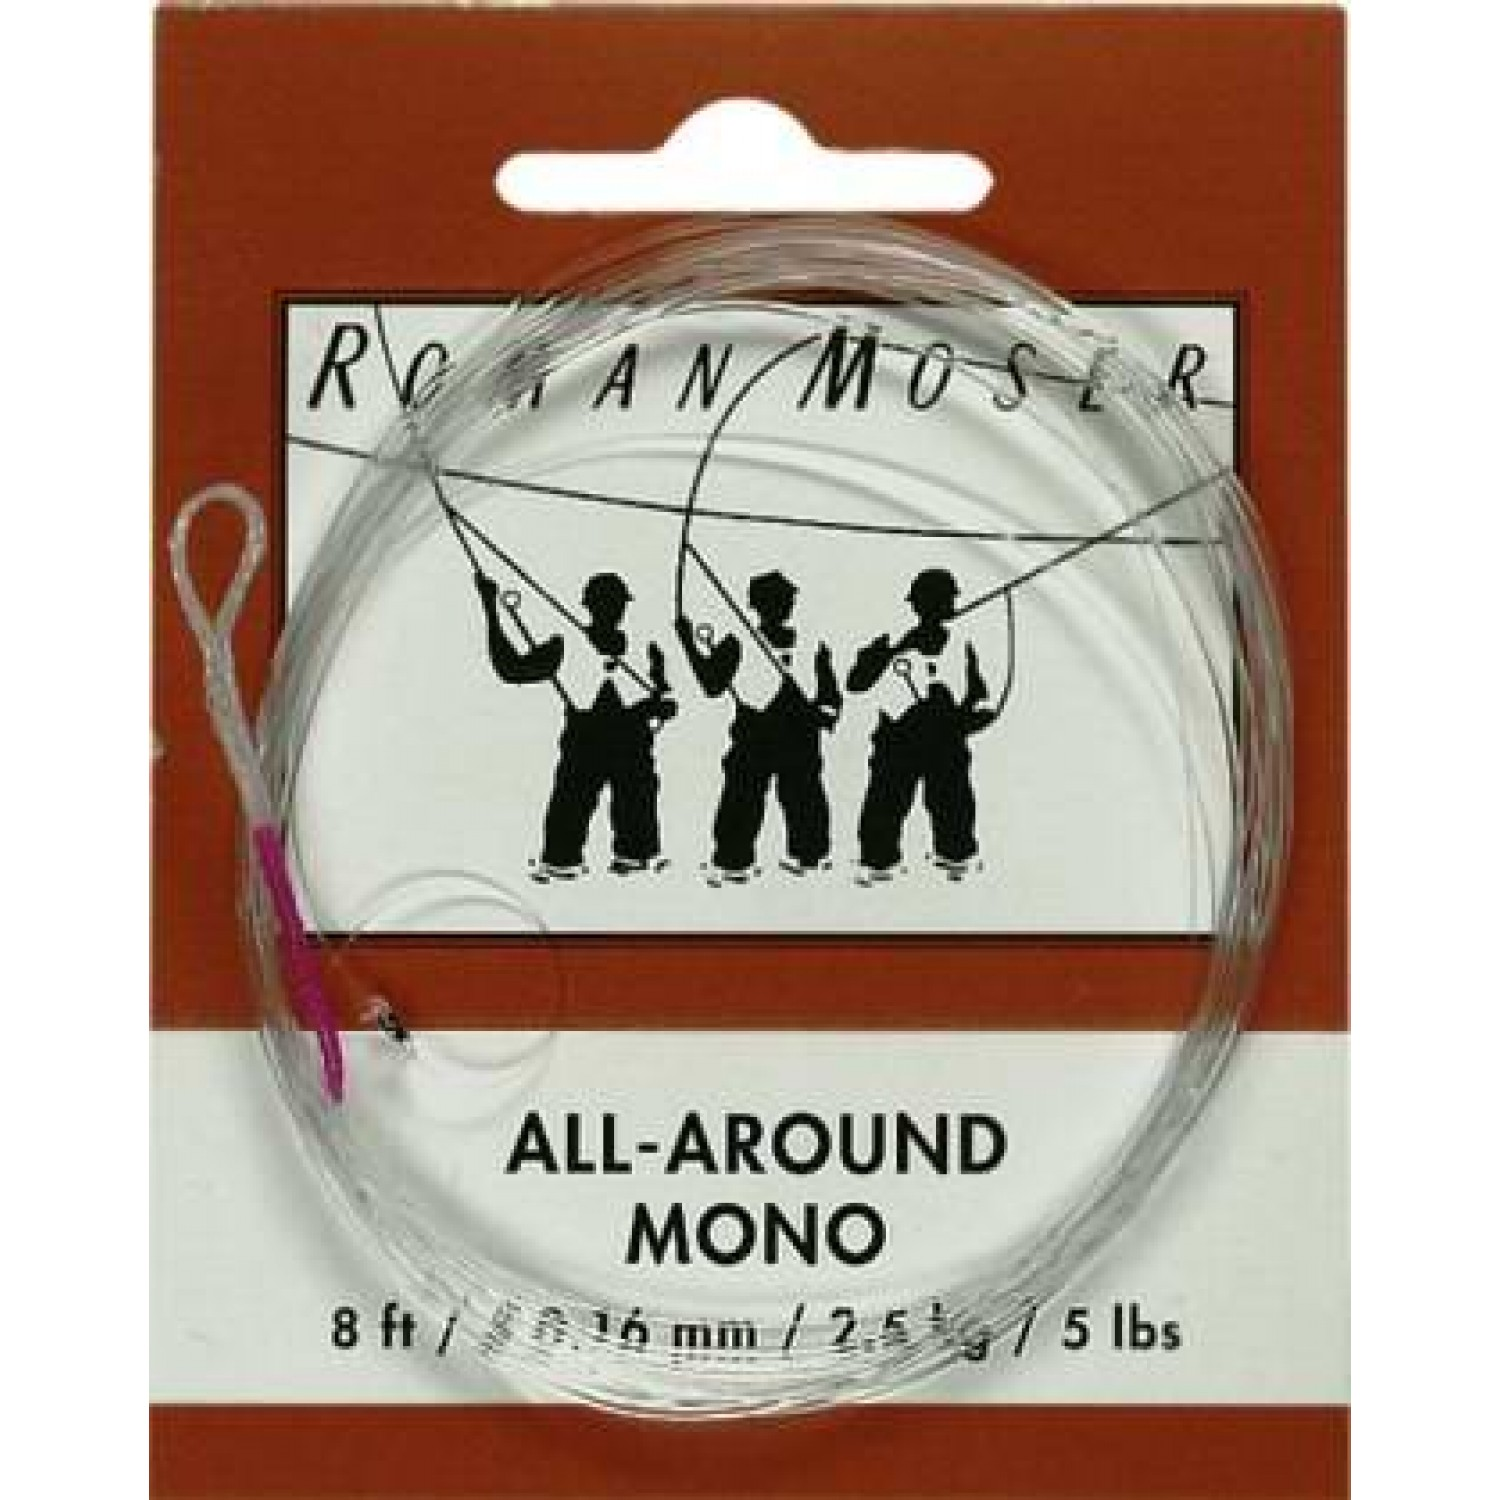 RM - All Around Mono: (8 ft/# 0,16 mm)